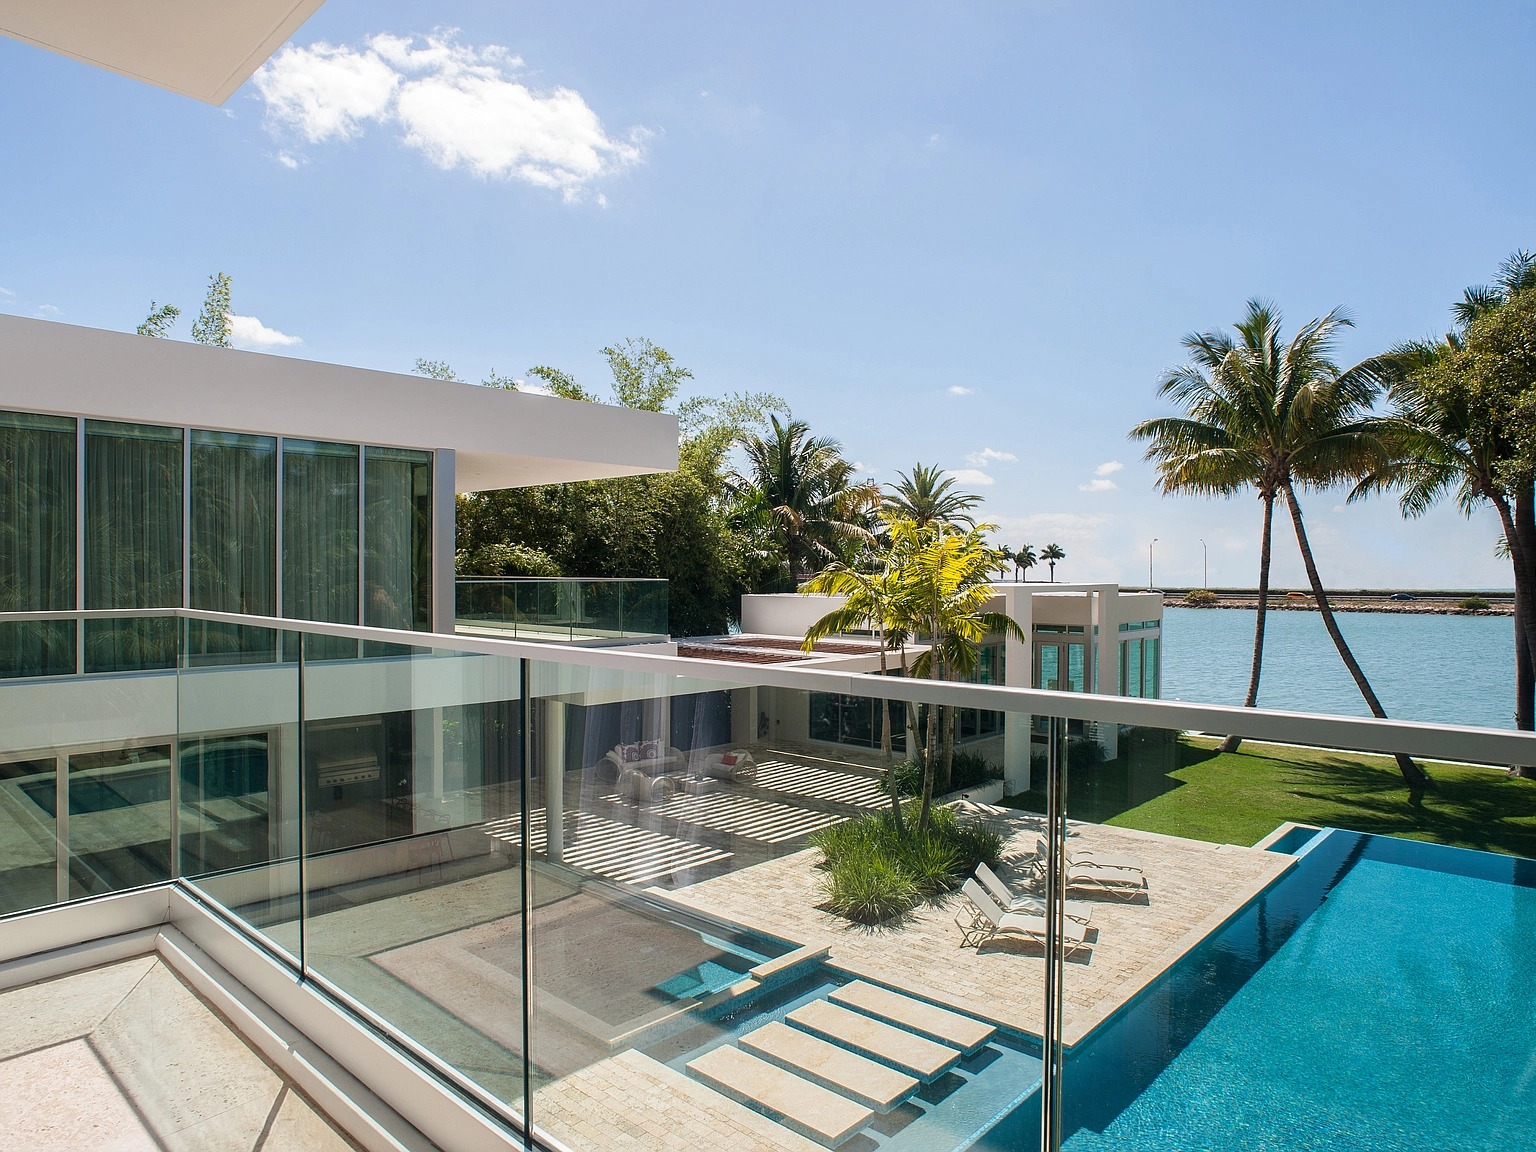 30 Palm Ave, Miami Beach, FL 33139 - $29,000,000 home for sale, house images, photos and pics gallery